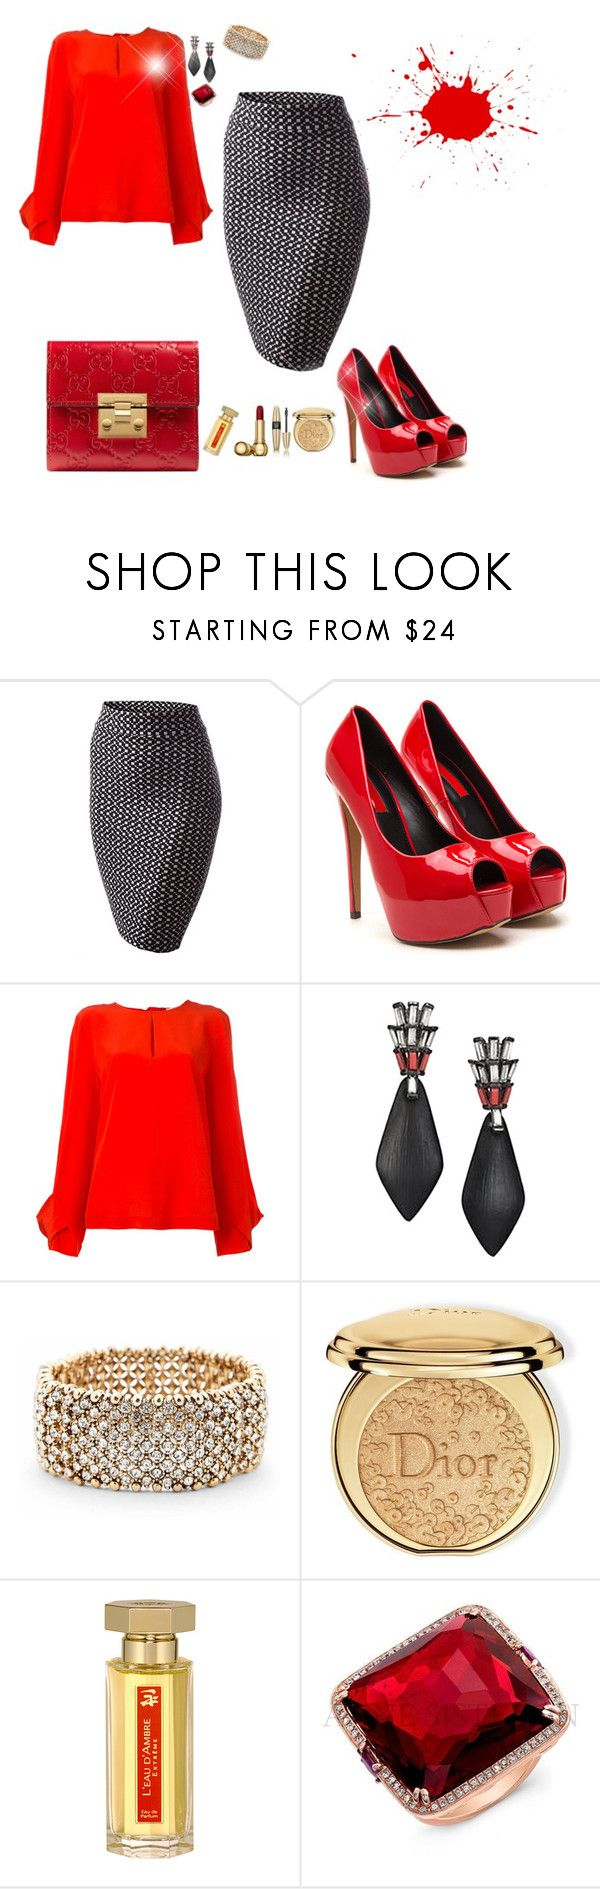 Office time lady in Red by Diva of Cake featuring mode, MSGM, Gucci, Anne Sisteron, Alexis Bittar, Sole Society, Christian Dior, L'Artisan Parfumeur and Victoria's Secret